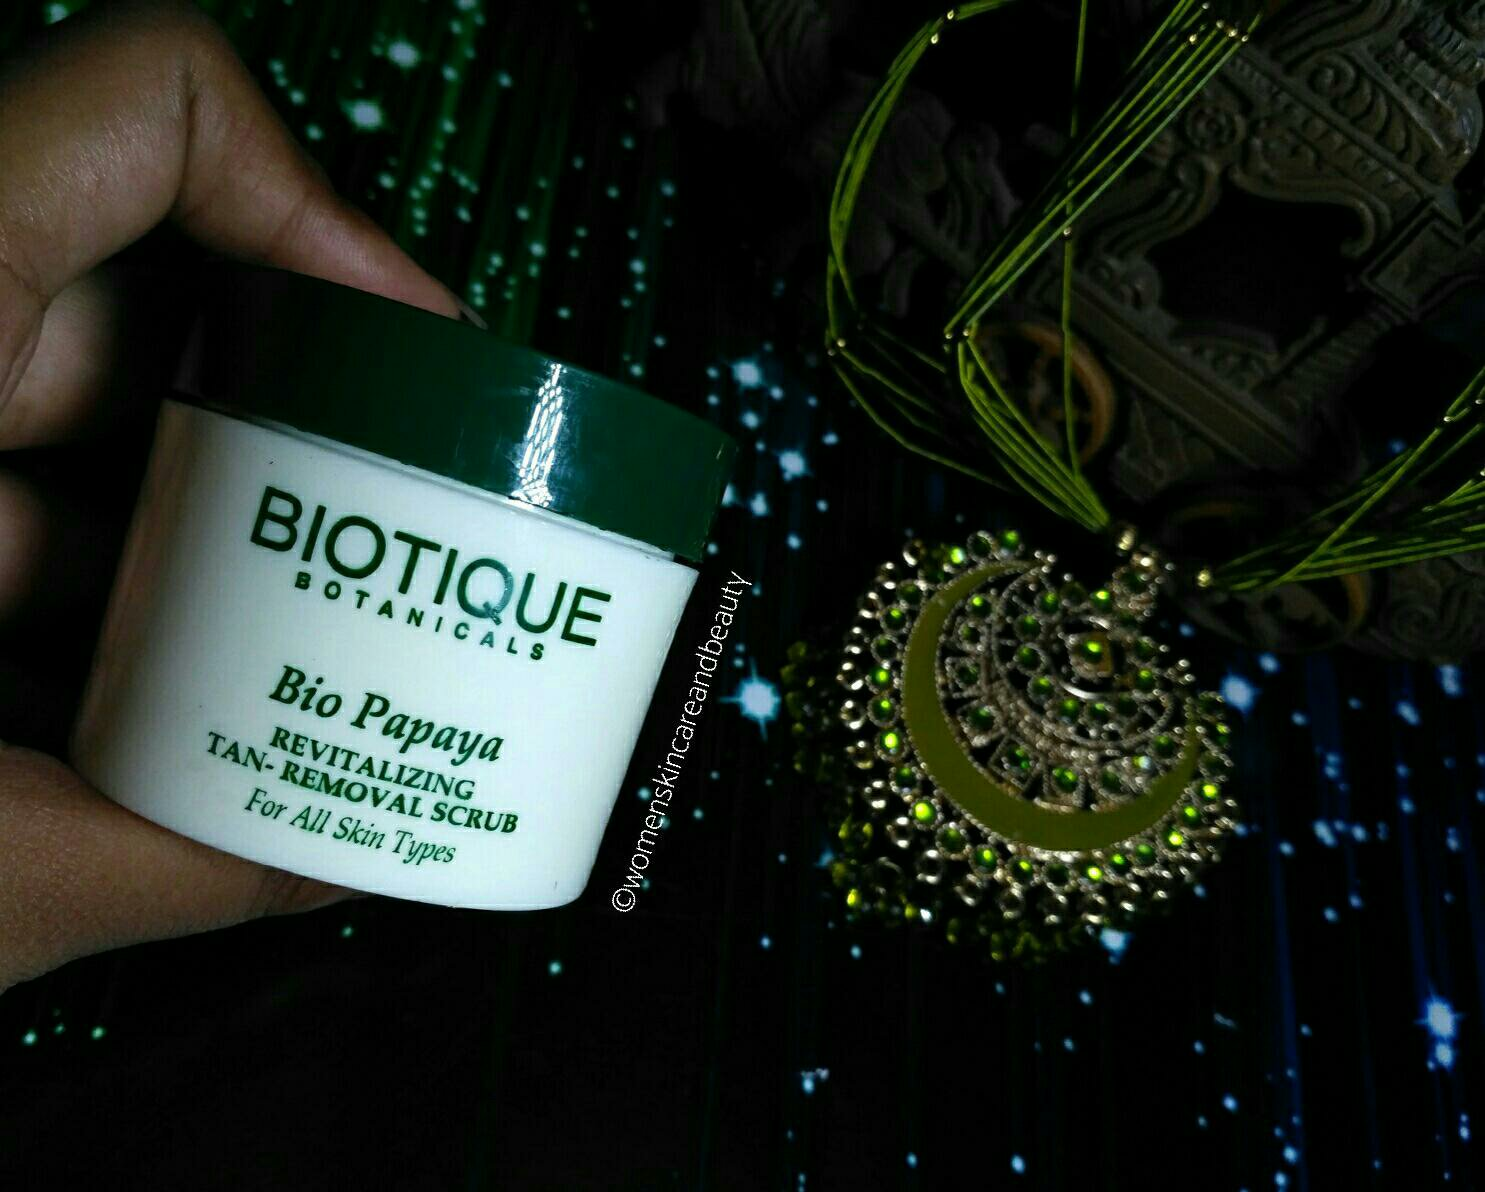 Biotique Bio Papaya Tan Removal Scrub